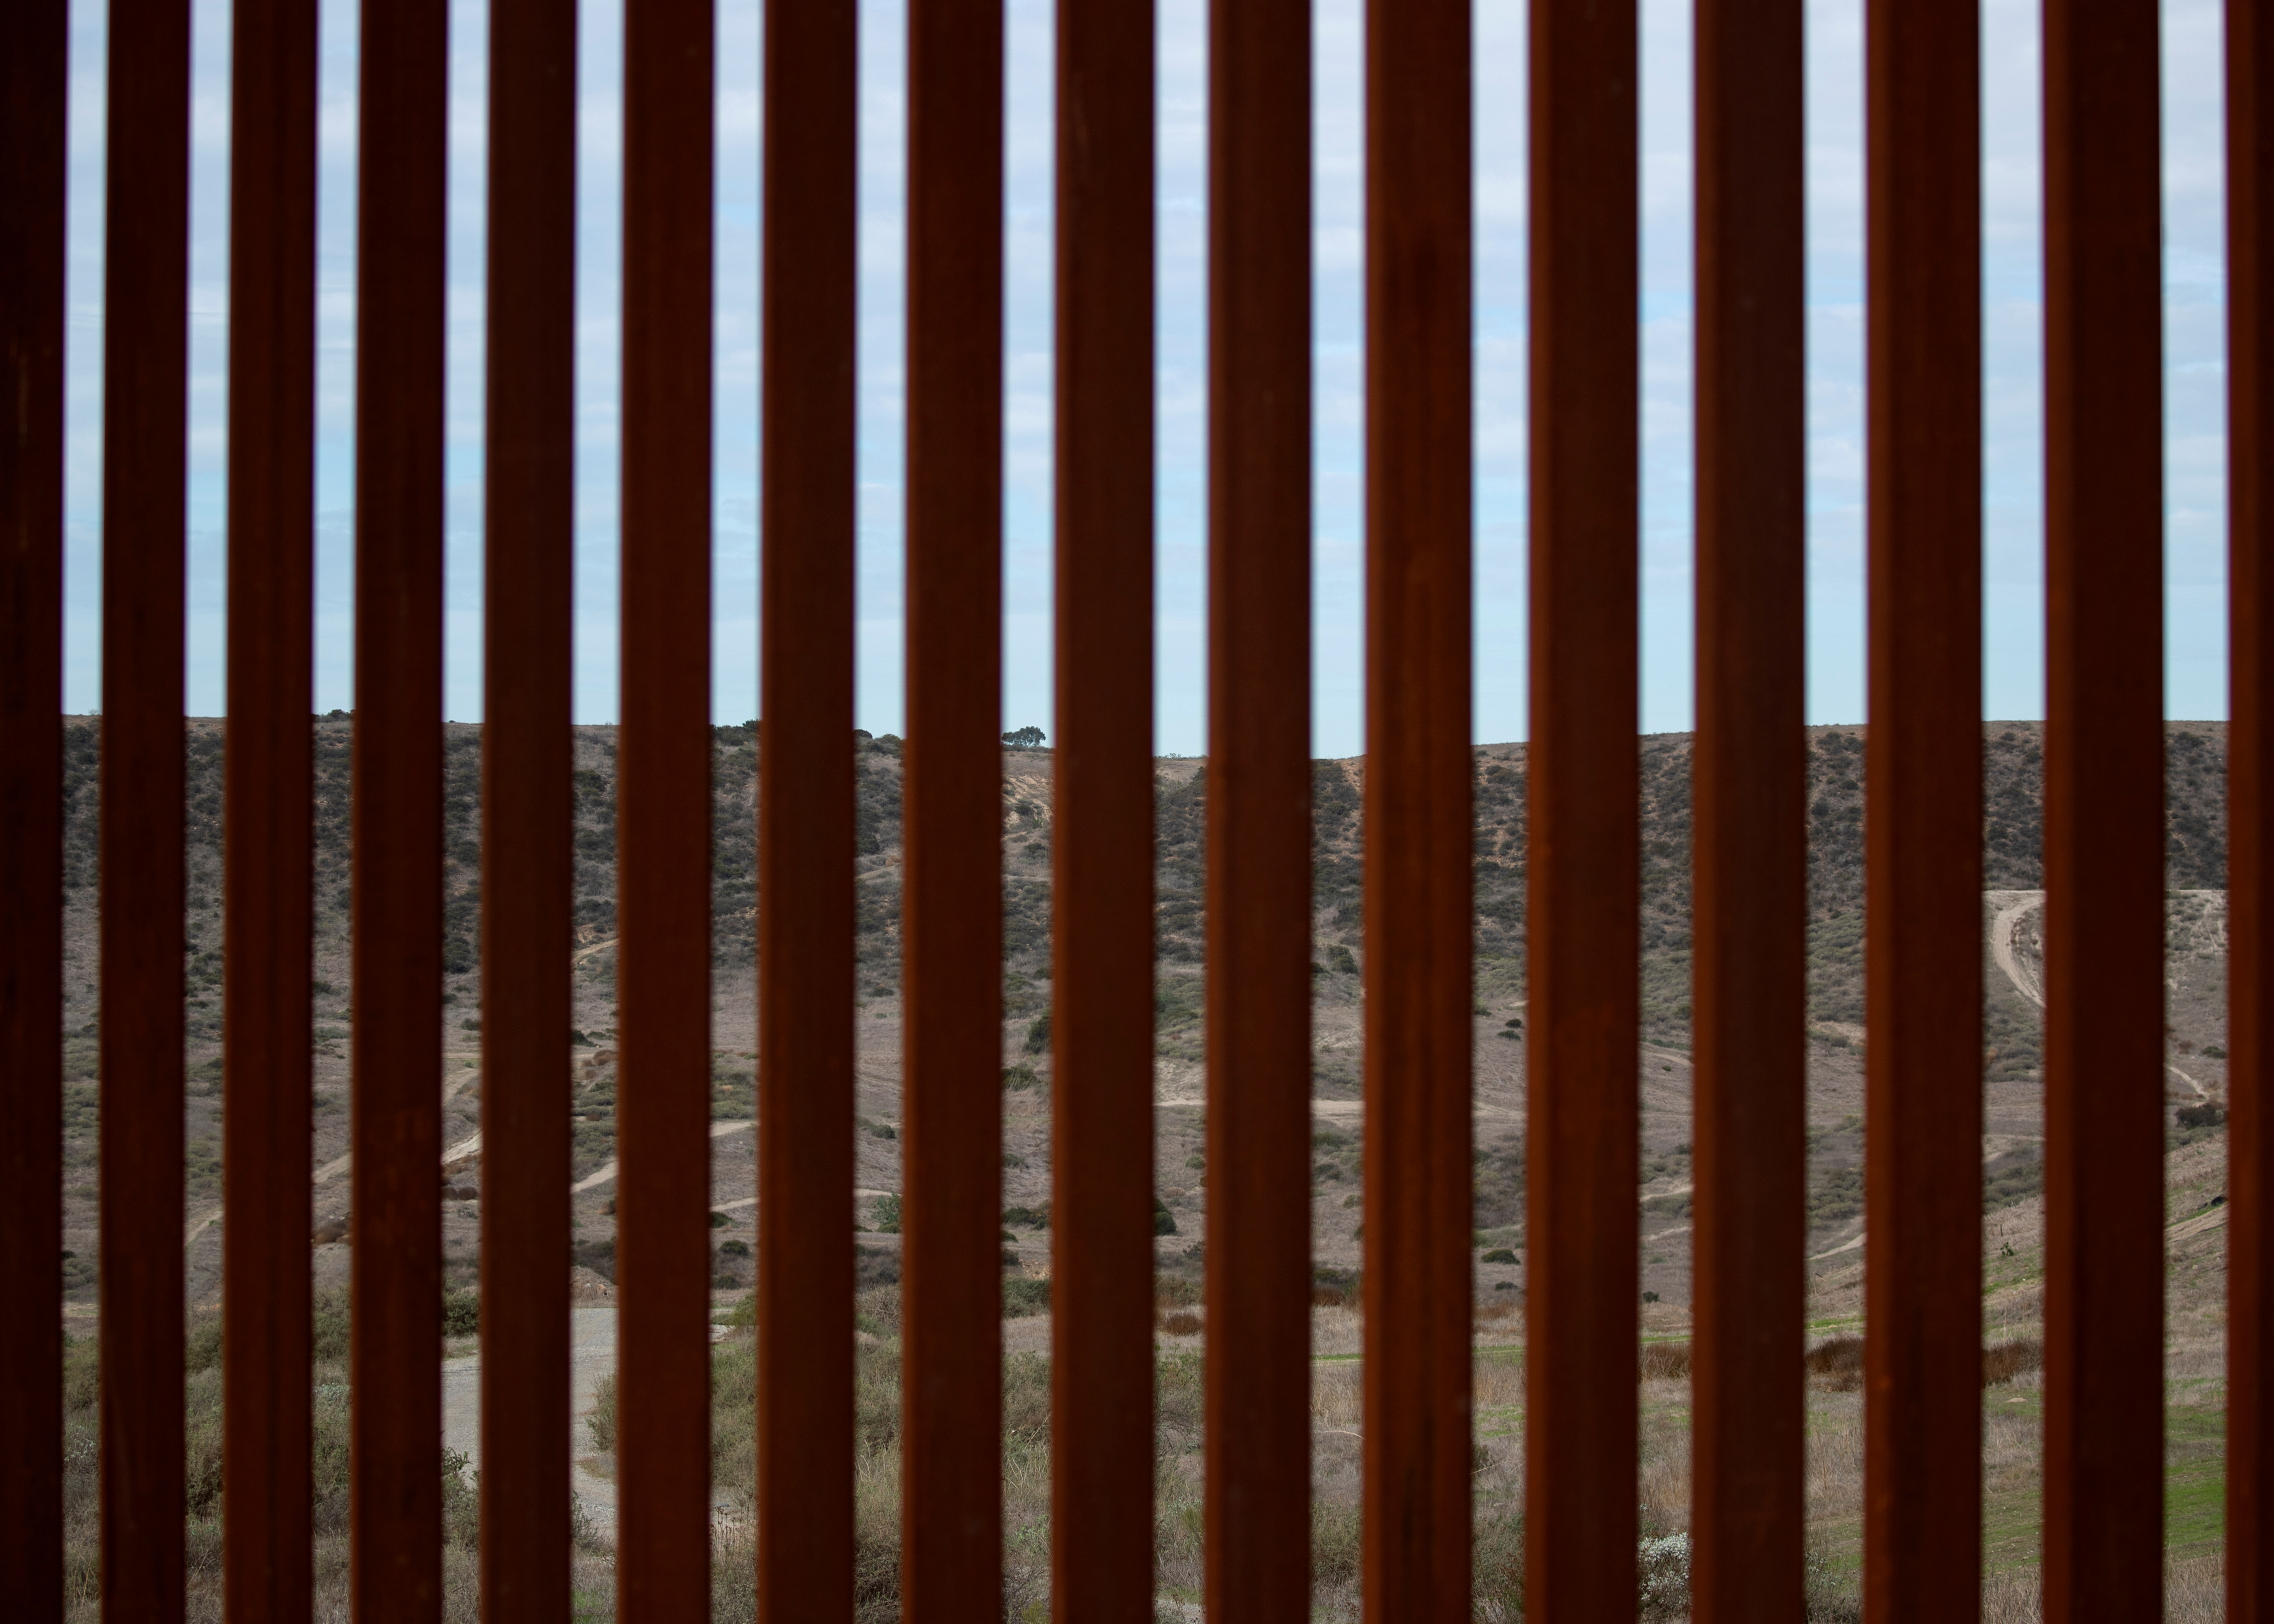 The United States is shown through a section of the new border wall between Mexico and the U.S. near San Diego, California, U.S., February 2, 2021. REUTERS/Mike Blake